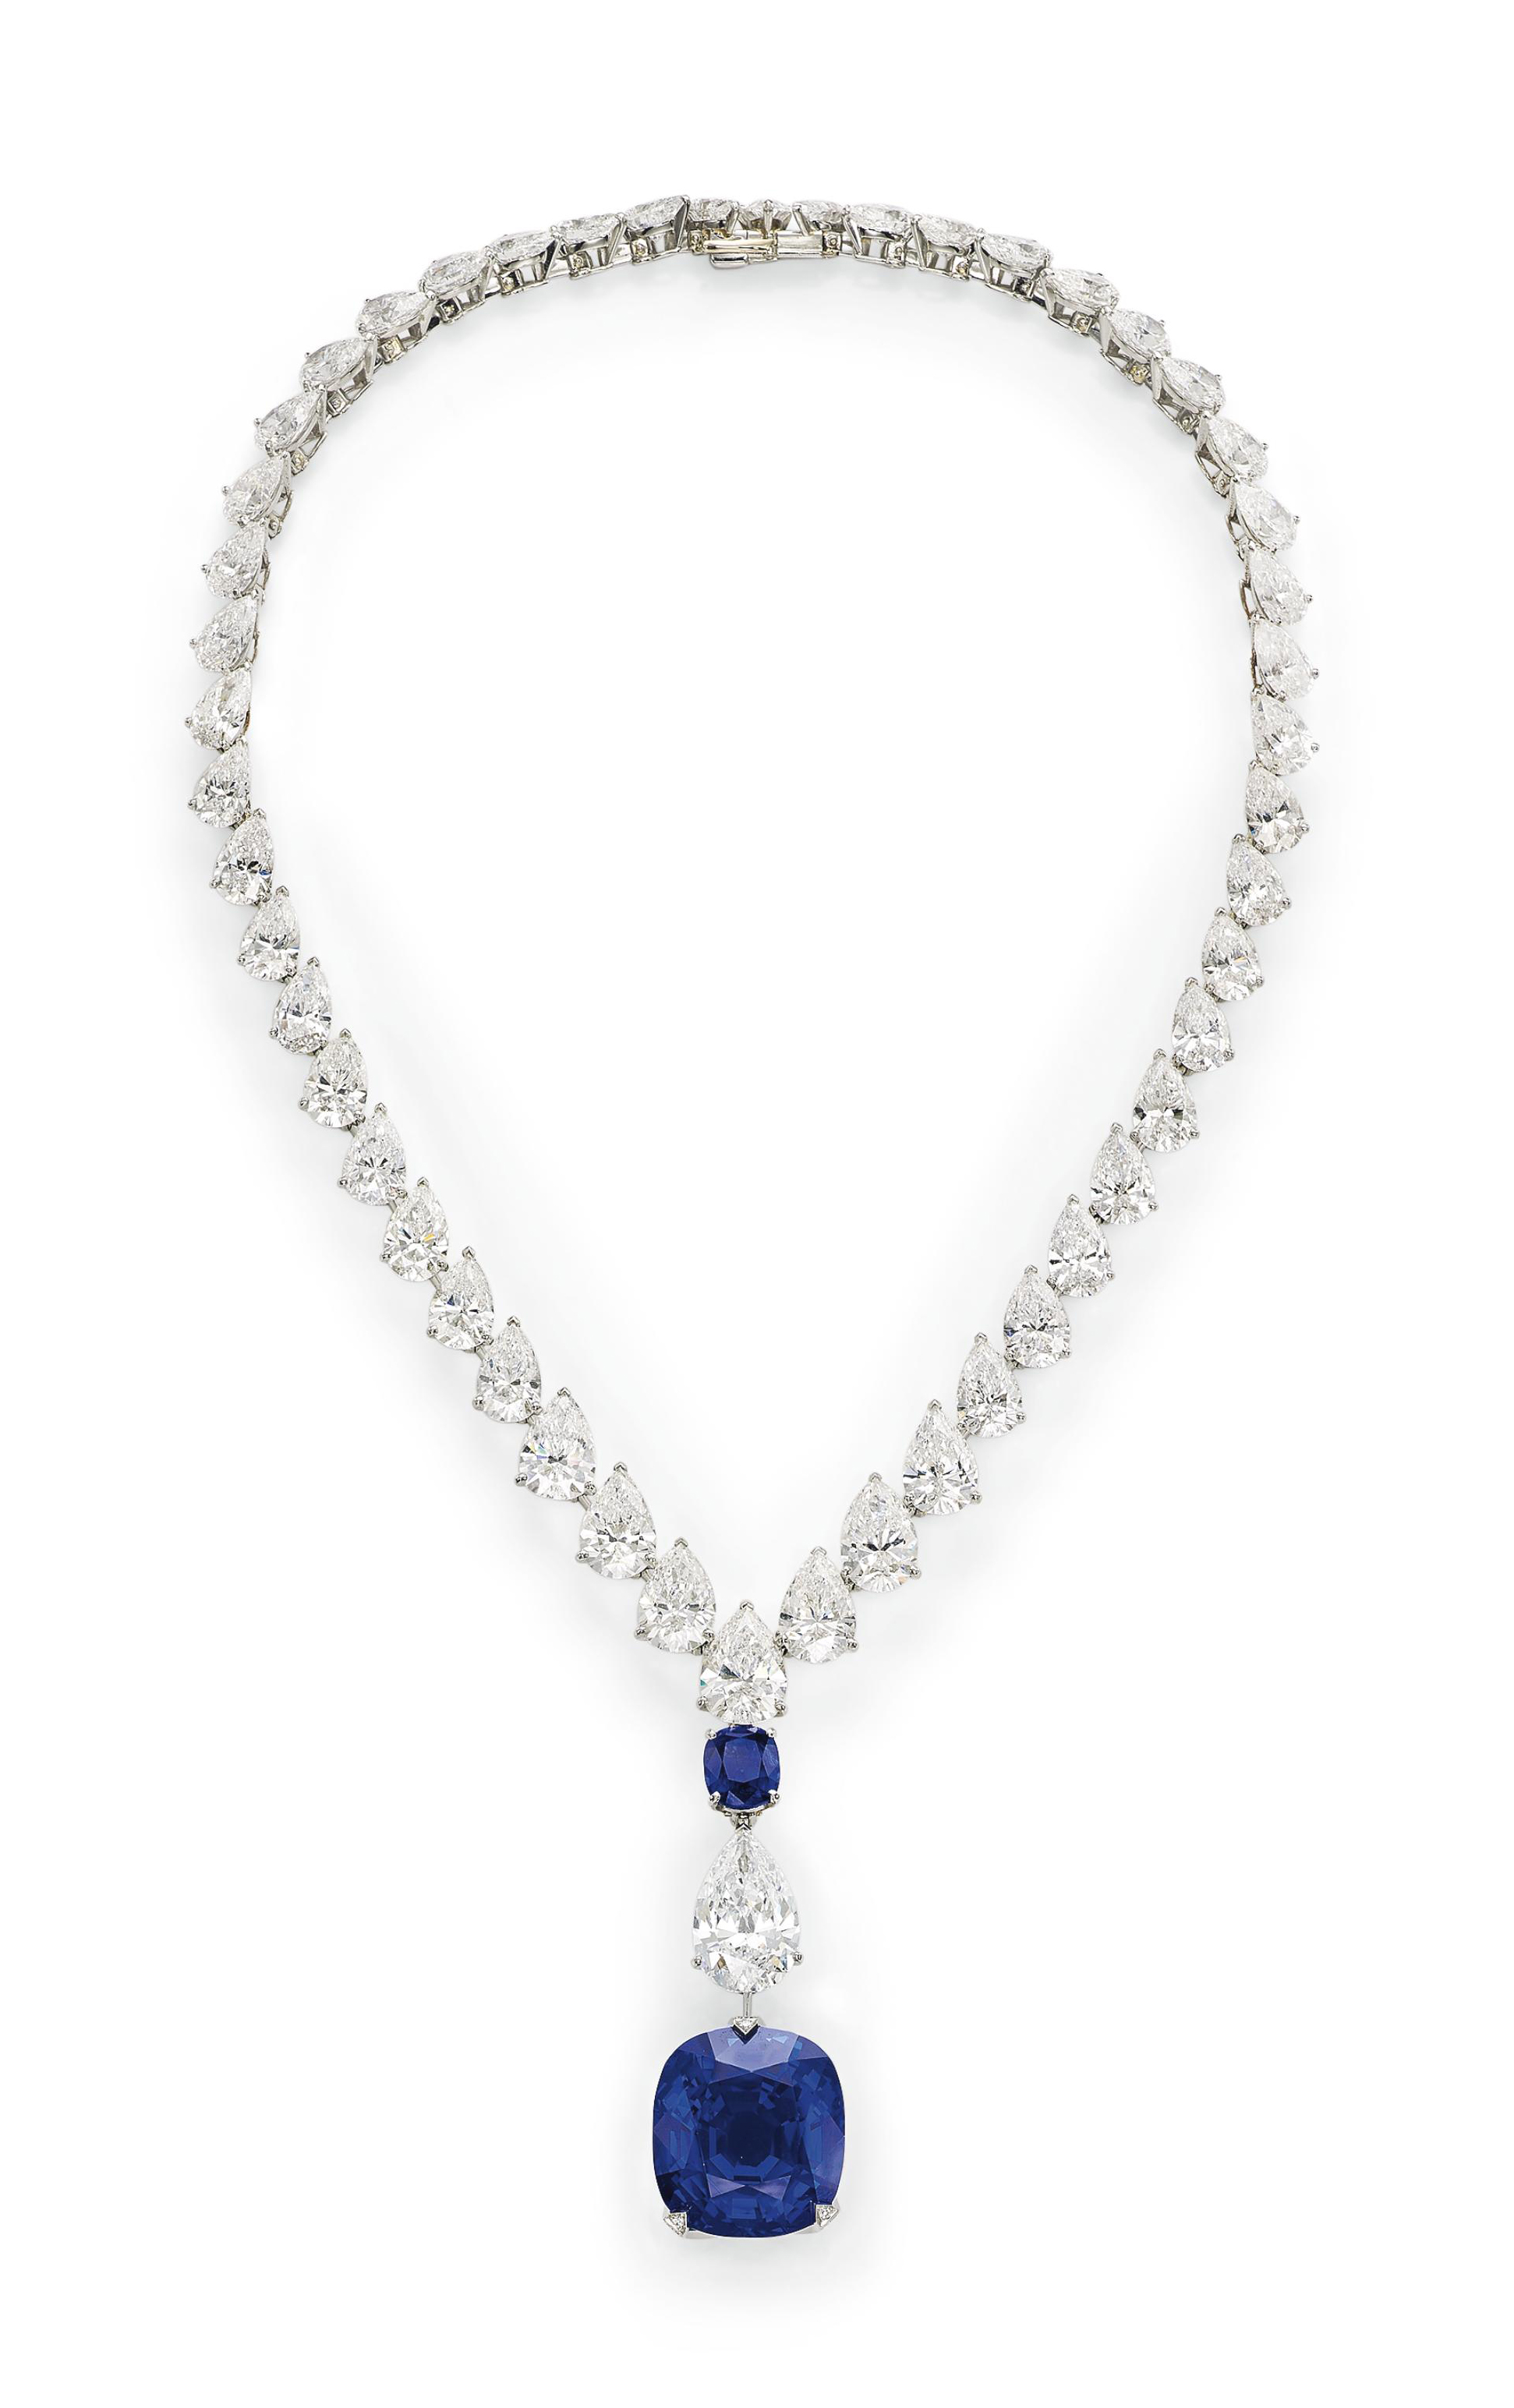 A Magnificent Sapphire And Diamond Necklace By Cartier